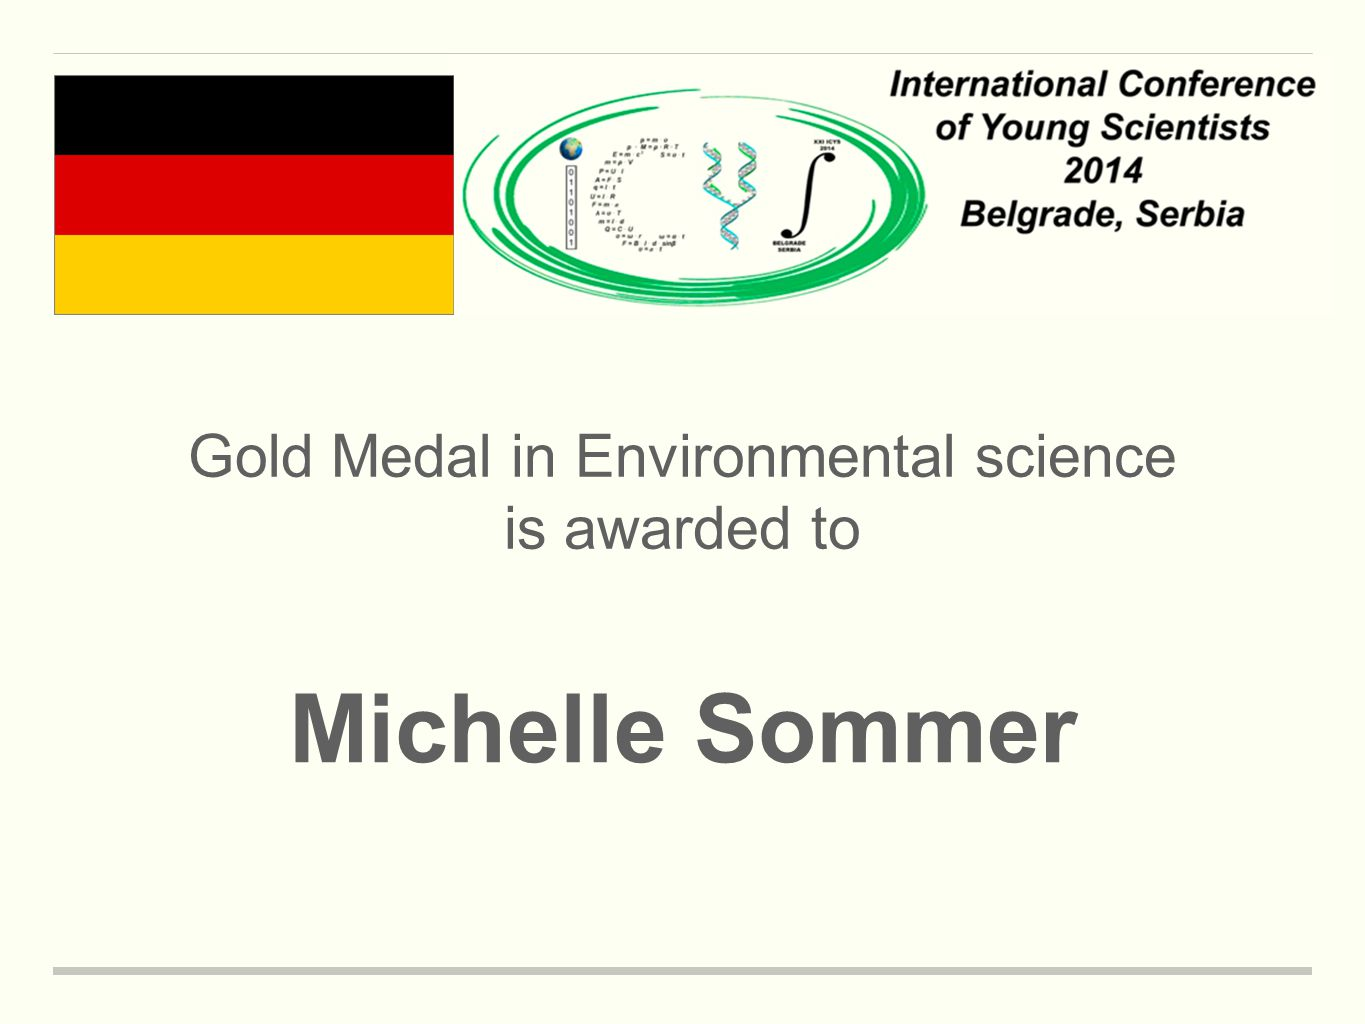 Gold Medal in Environmental science is awarded to Michelle Sommer